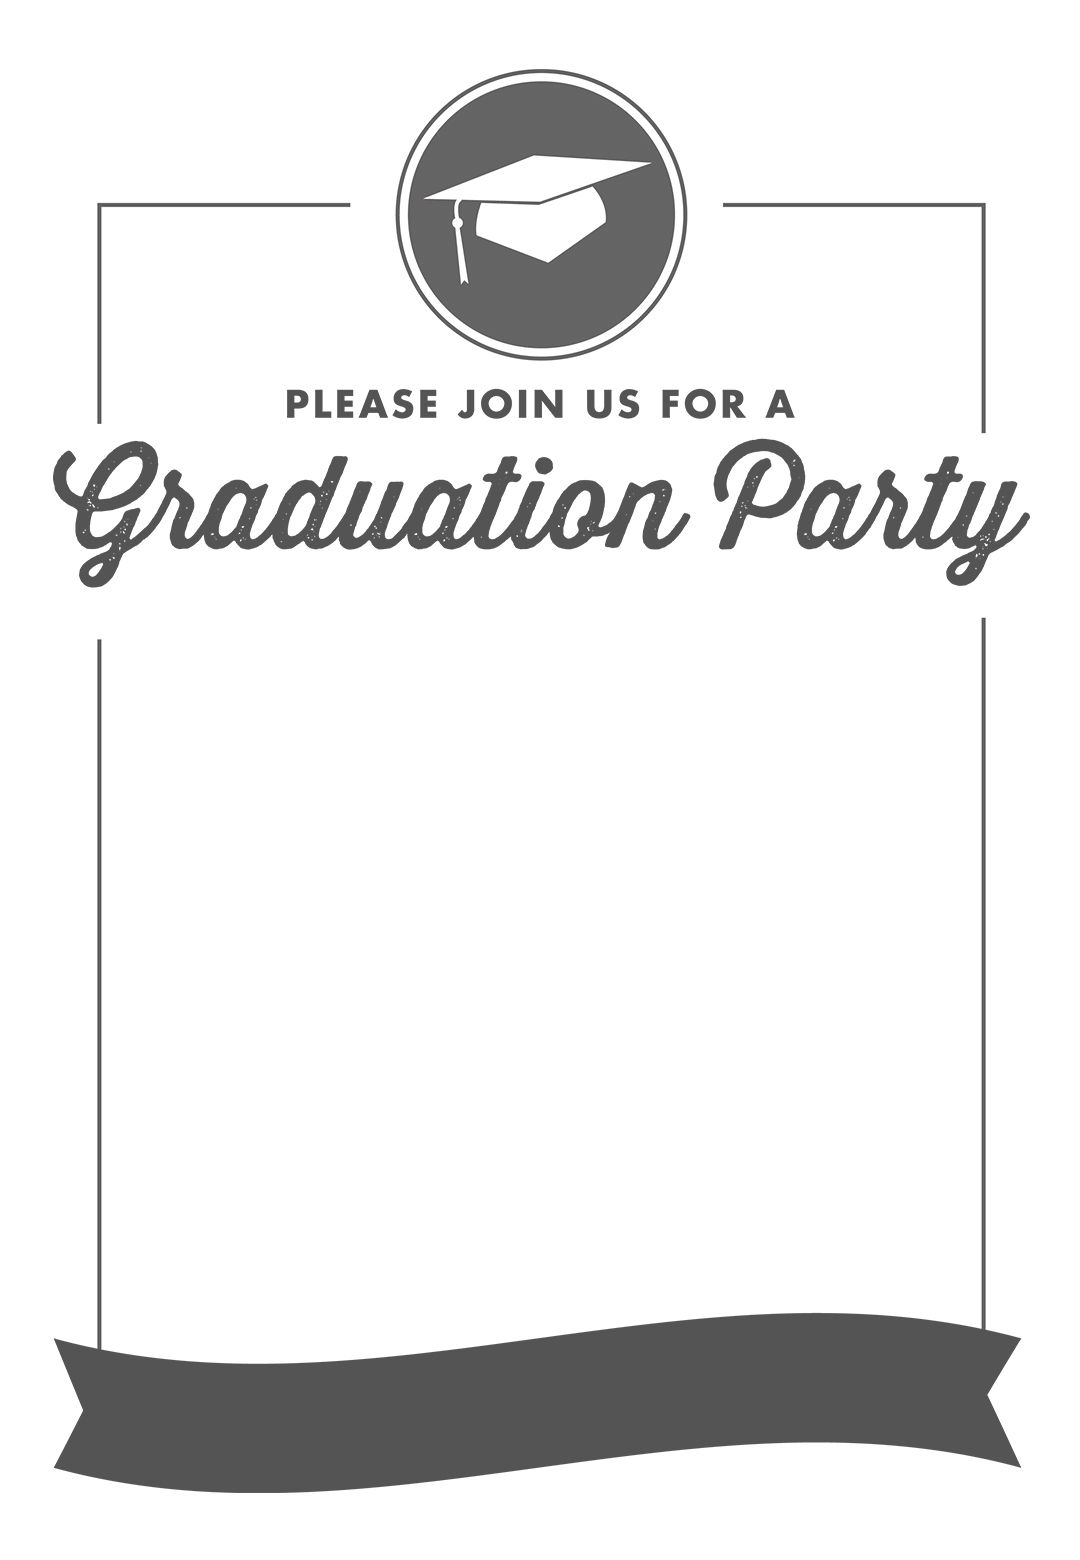 picture relating to Free Printable Graduation Invitations known as Ribbon Commencement - Cost-free Printable Commencement Occasion